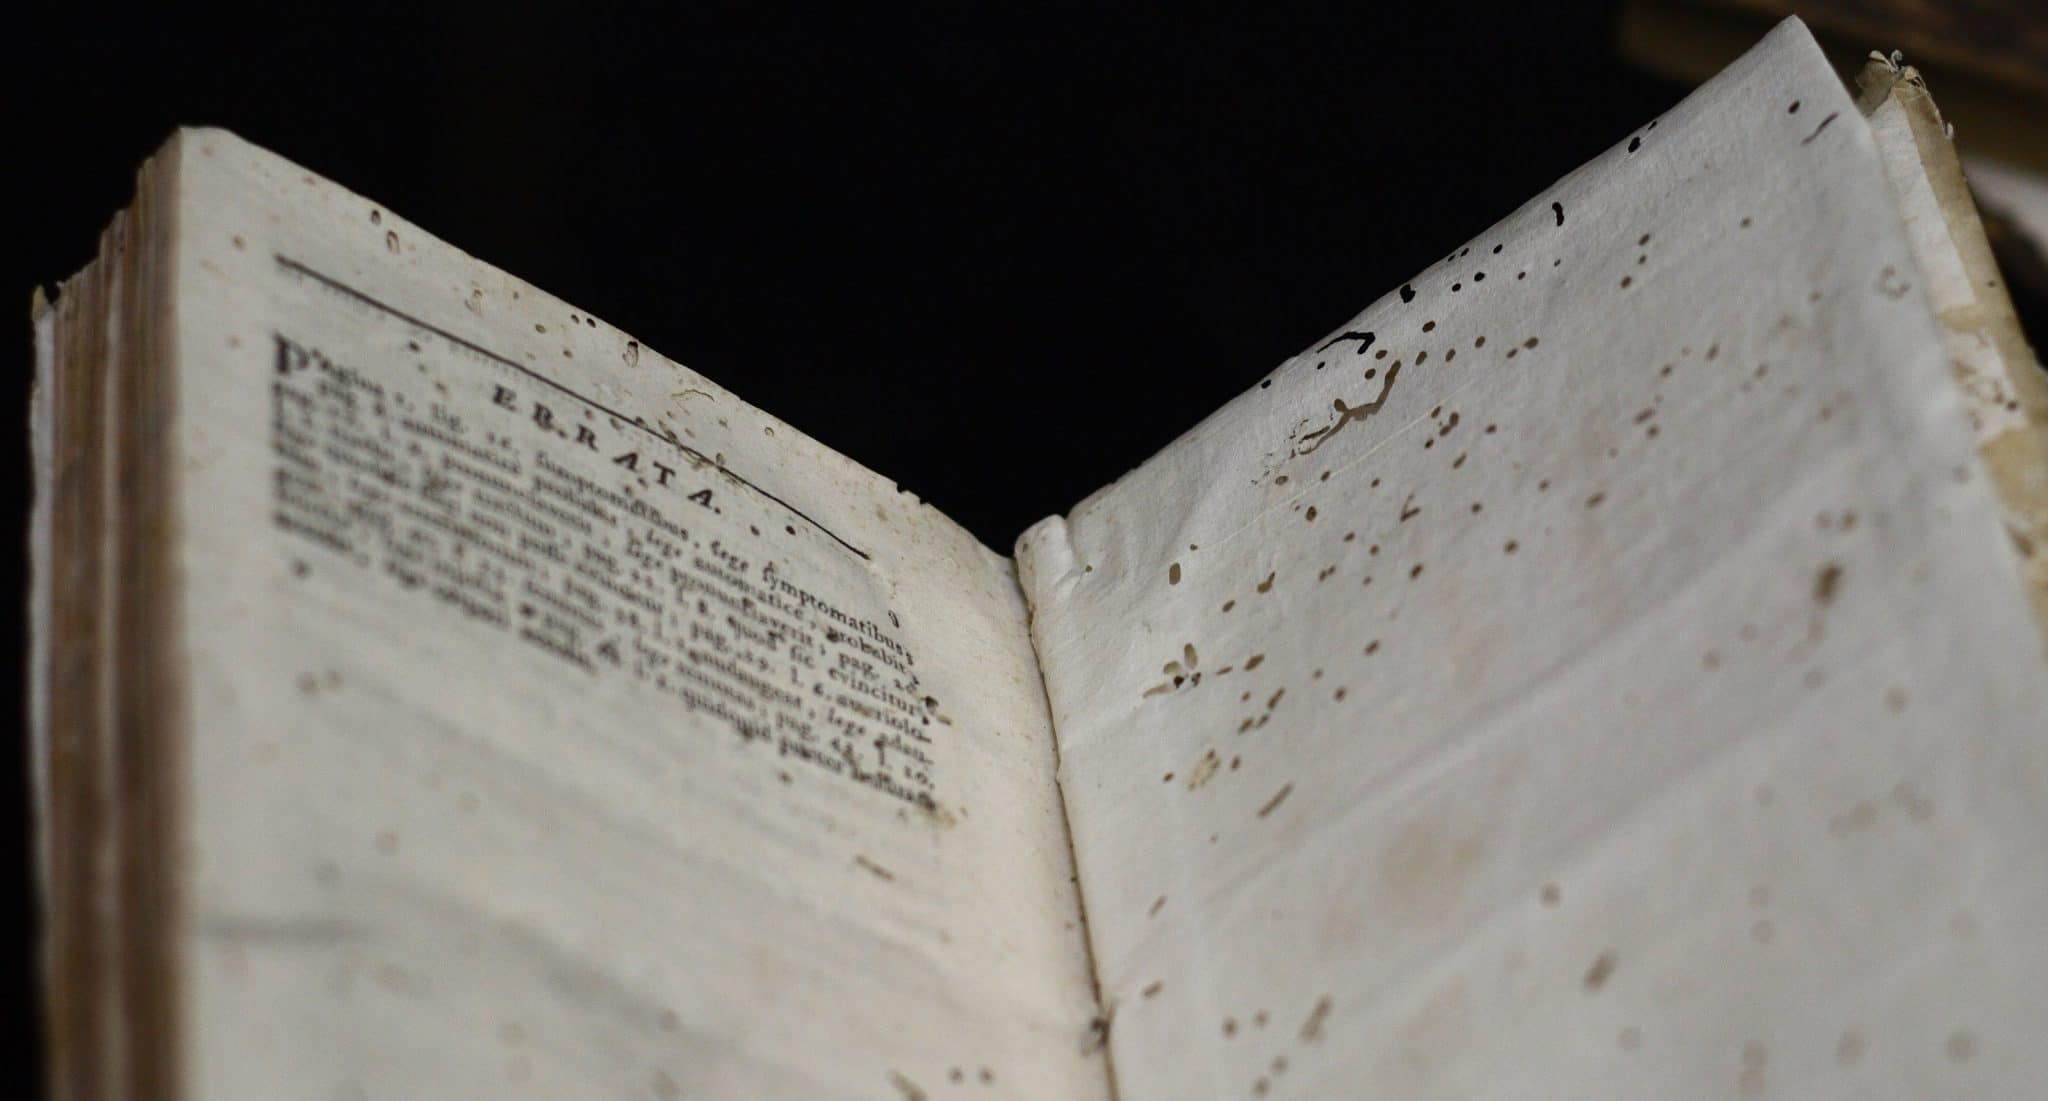 lice damage to a book